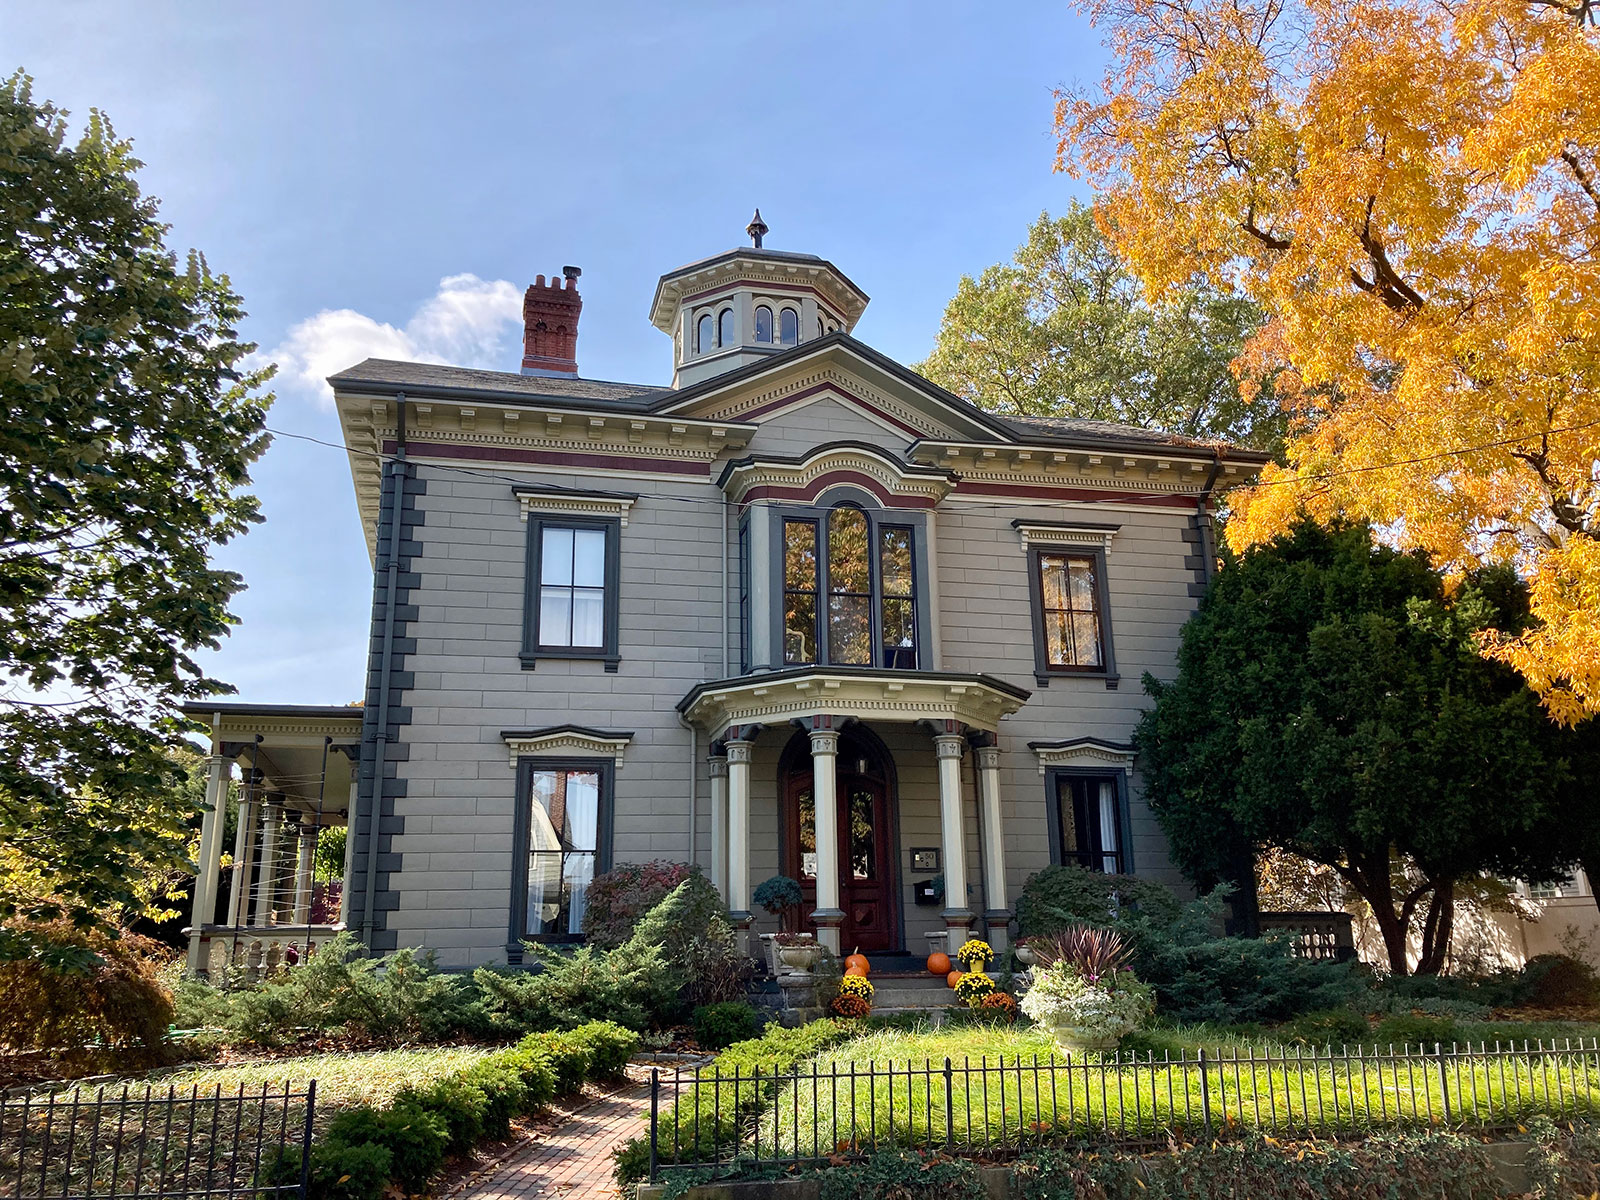 The Taylor House in Jamaica Plain